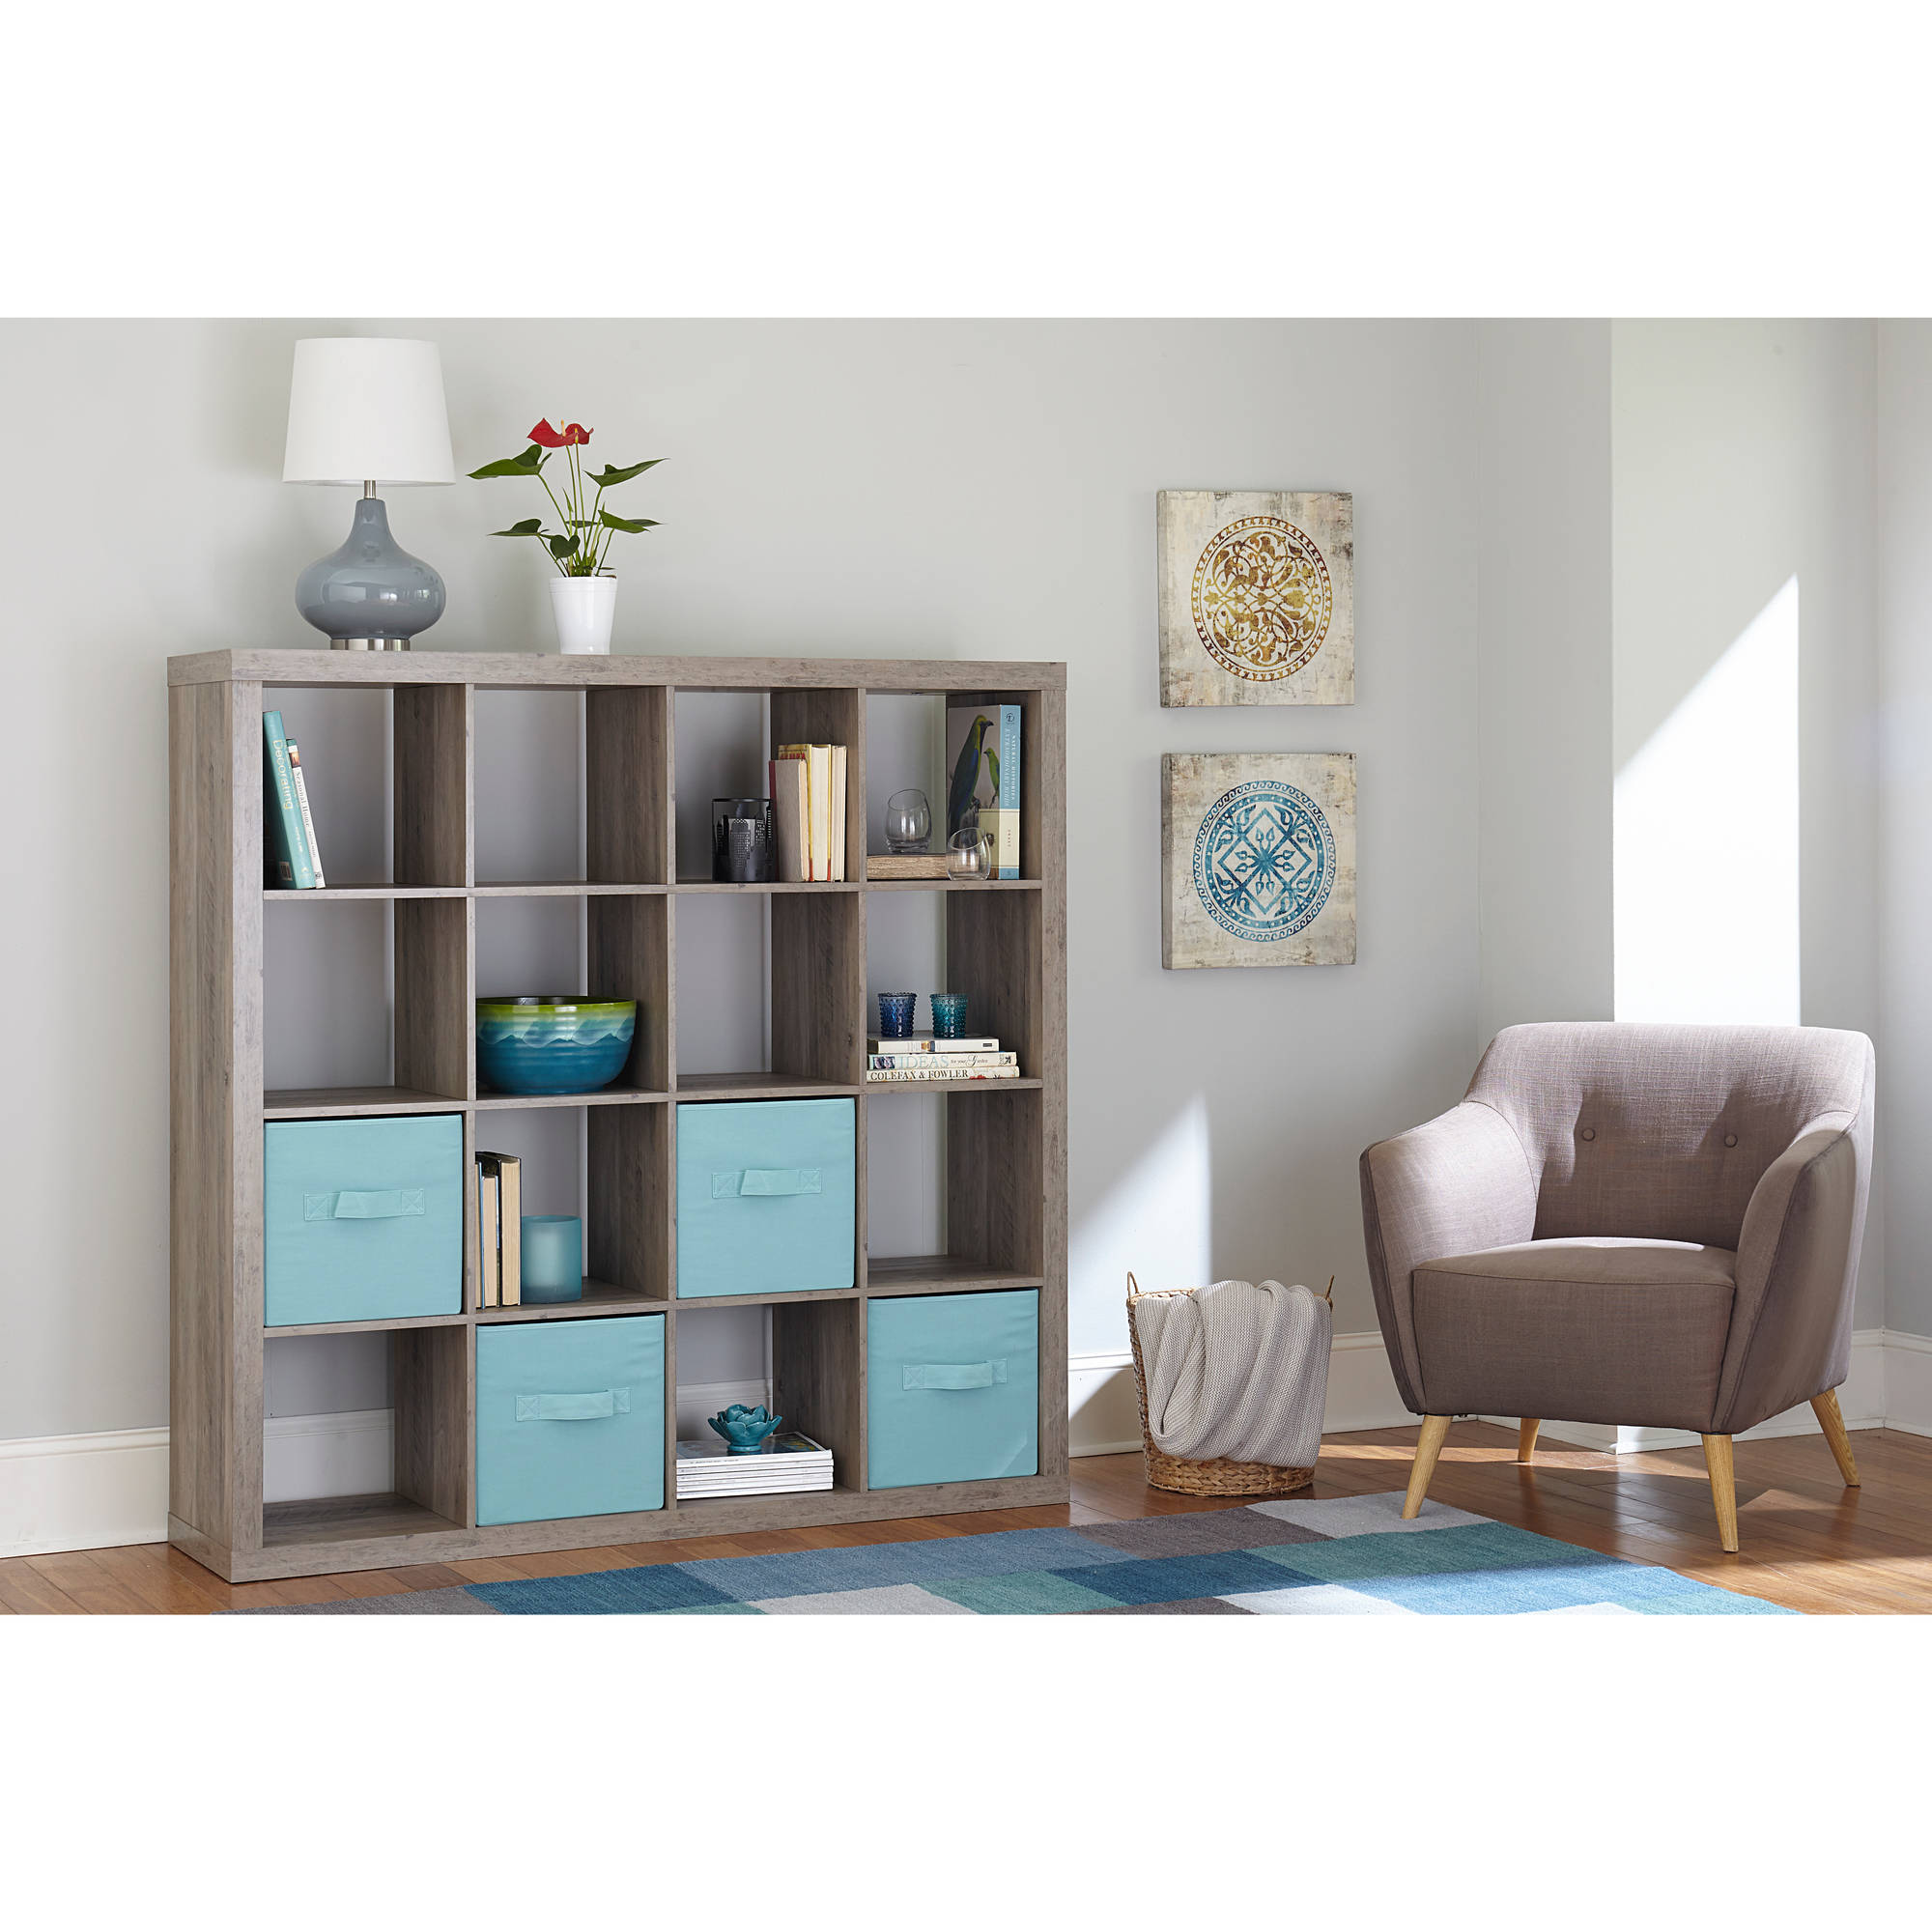 Furniture every day low prices walmart com